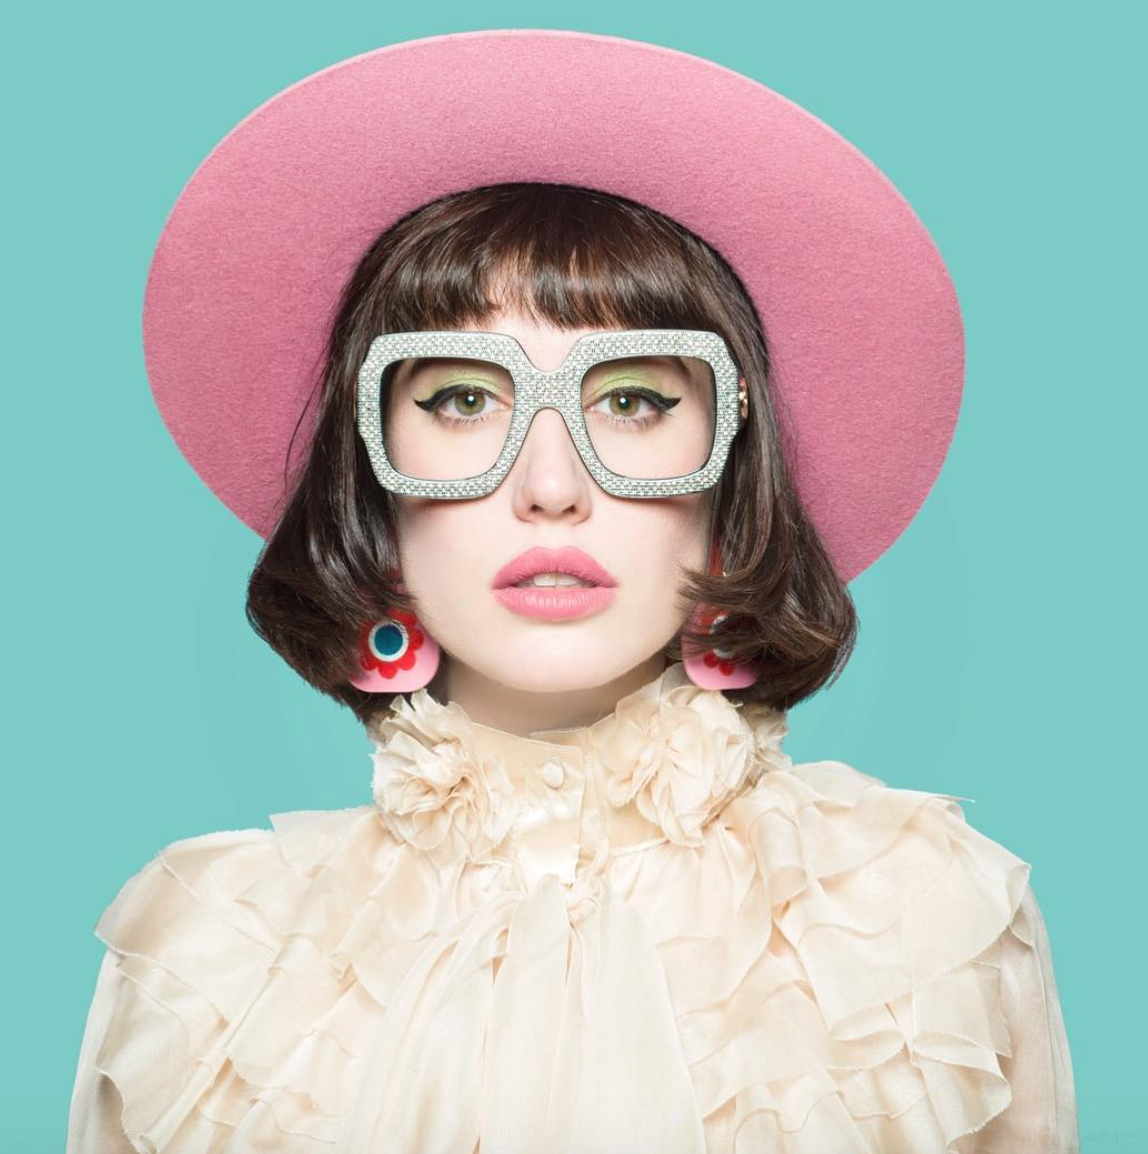 Fashion NerdDesigner & Blogger - Amy is an Eyewear Designer at Betty and Veronica, CEO & Founder at FashionTap App, Fashion blogger at A Fashion Nerd and Los Angeles Blogger and Designer of AmRoi Designs.